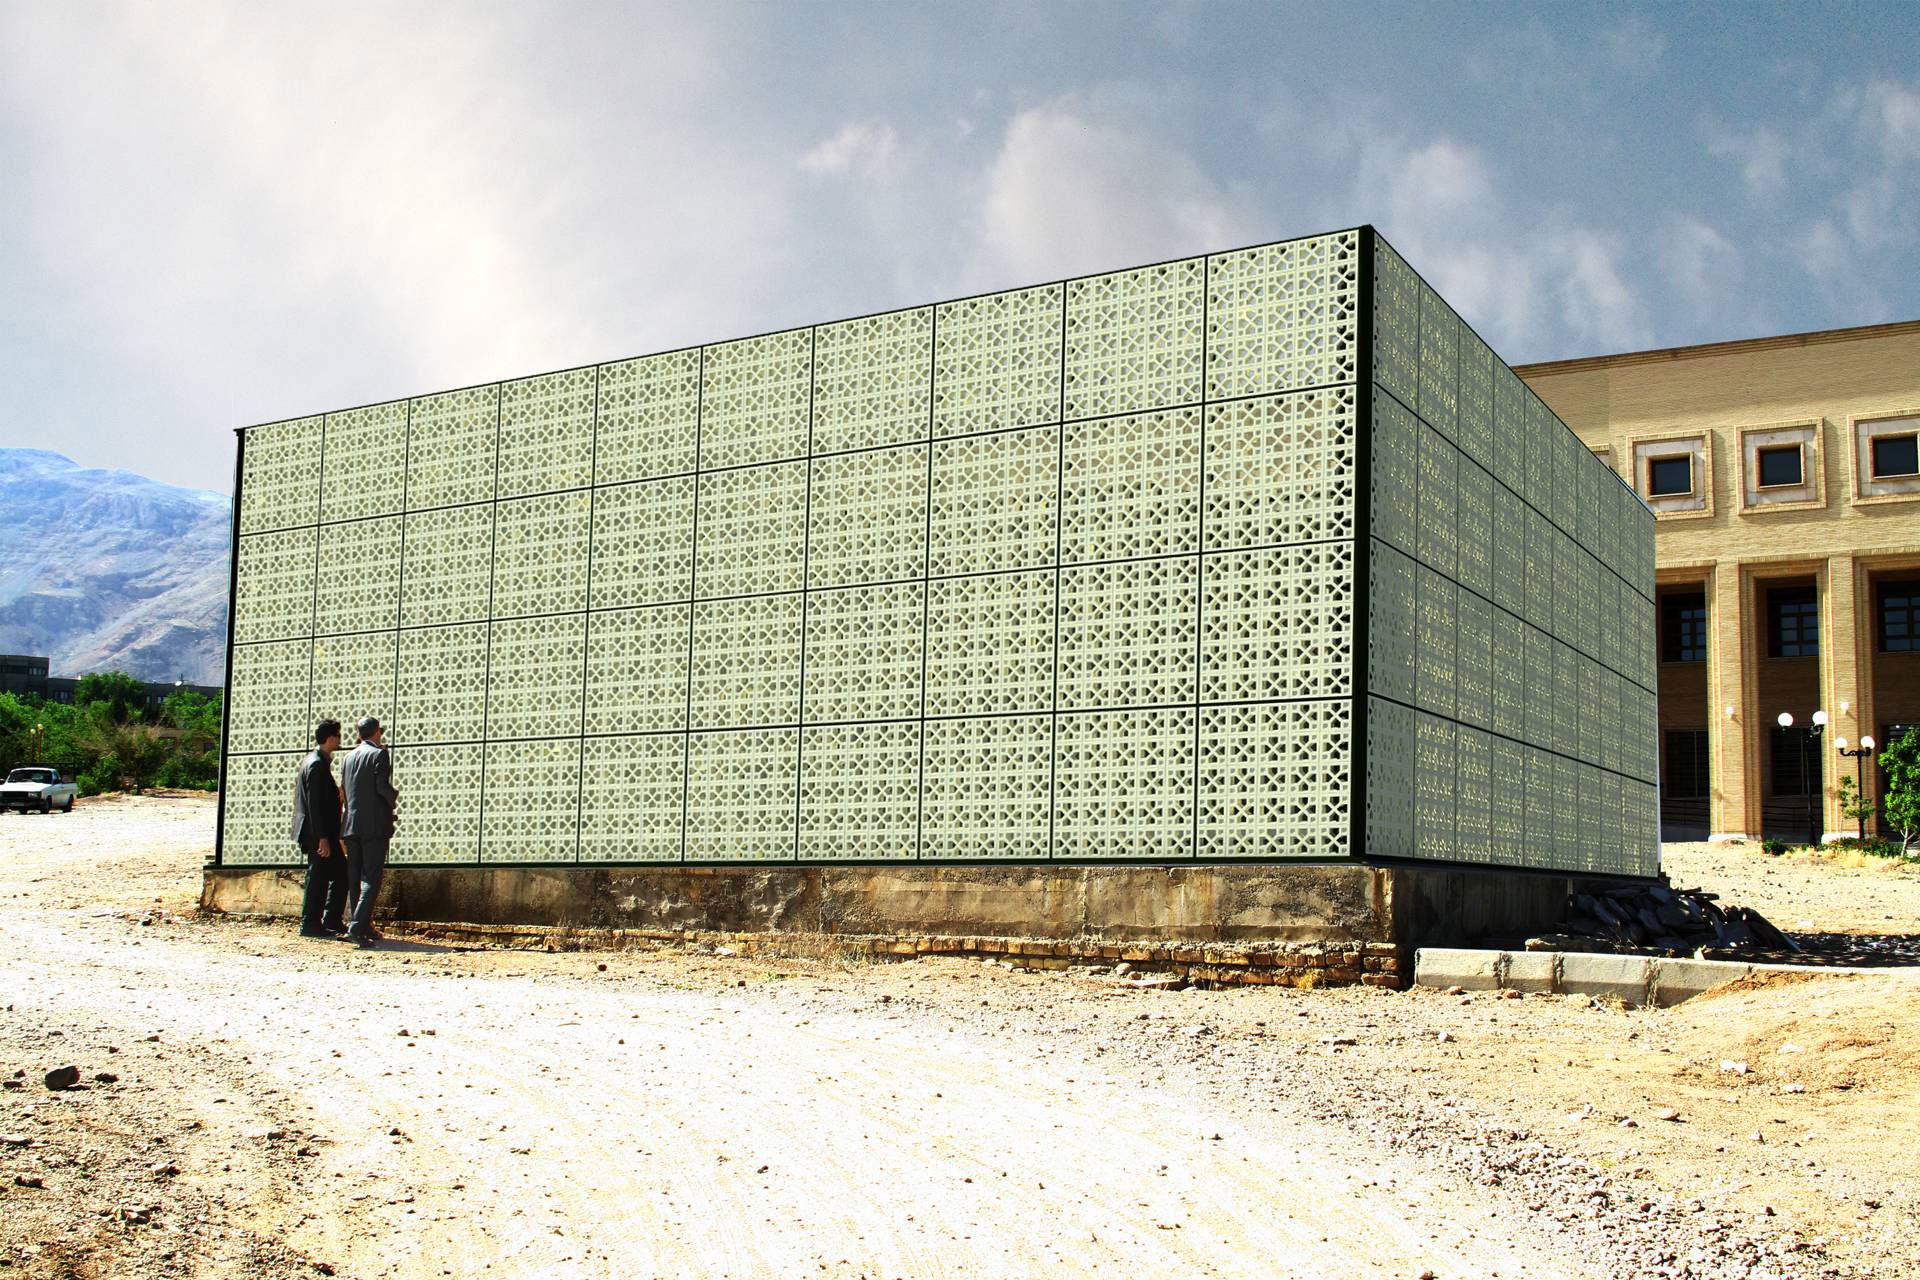 Walls covering the facility